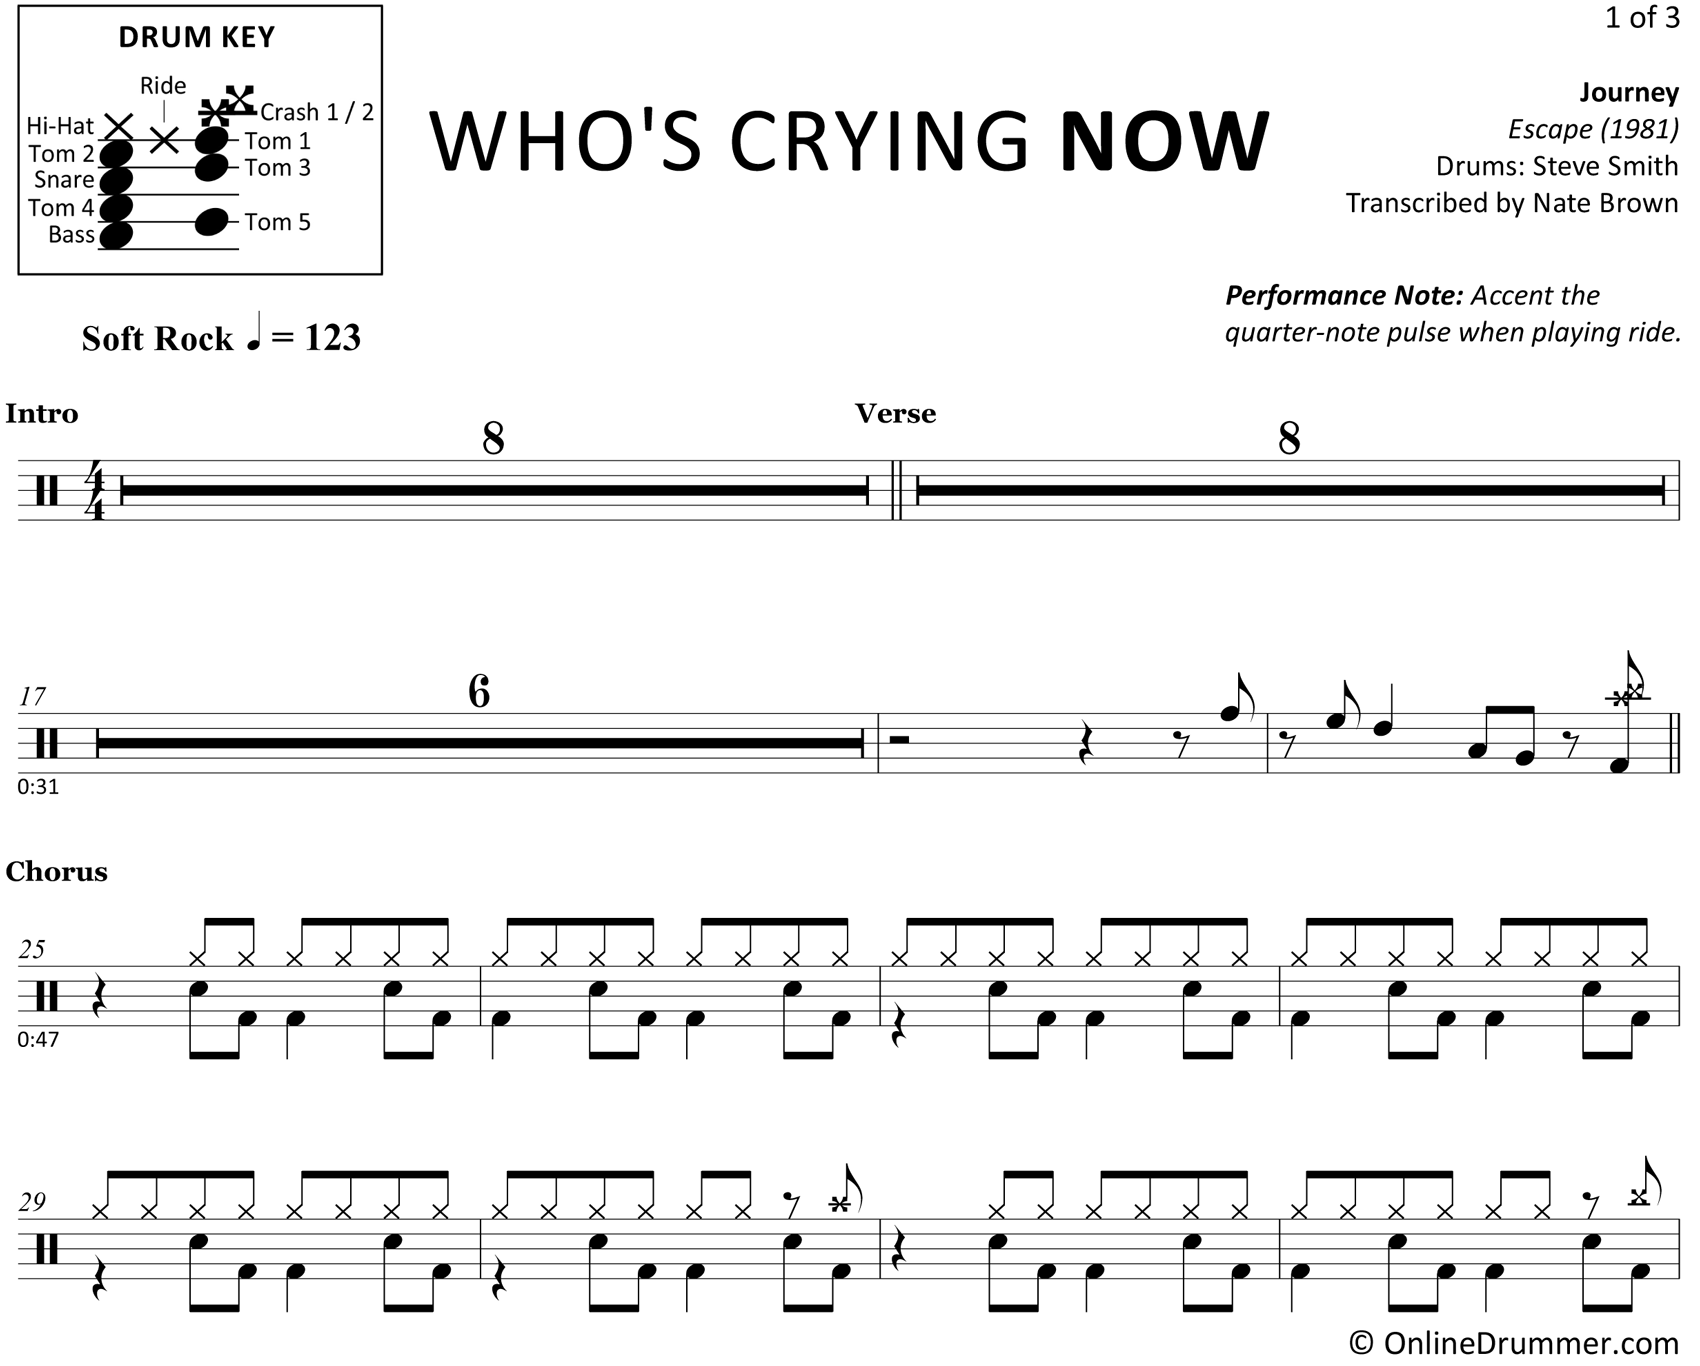 Who's Crying Now - Journey - Drum Sheet Music